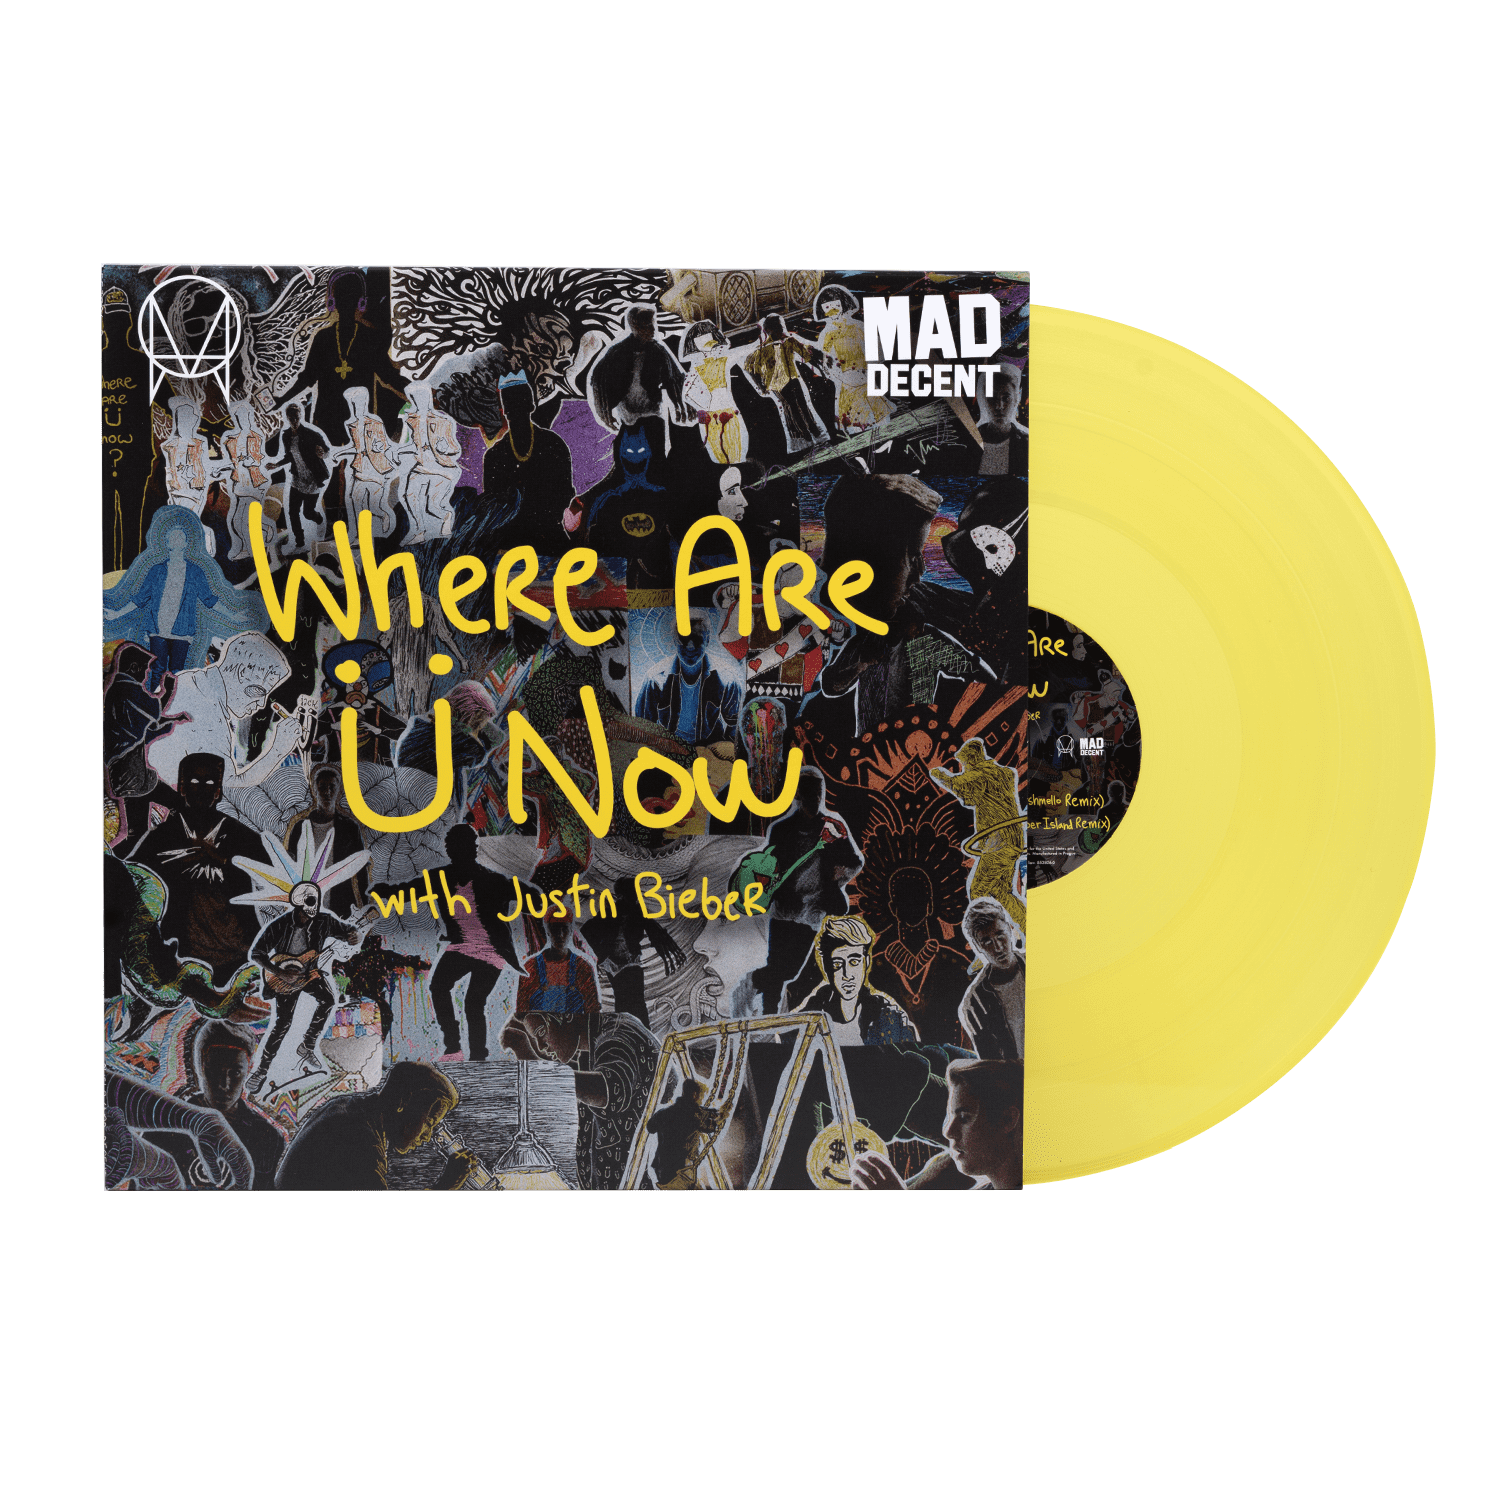 'WHERE ARE Ü NOW (featuring Justin Bieber)' Vinyl